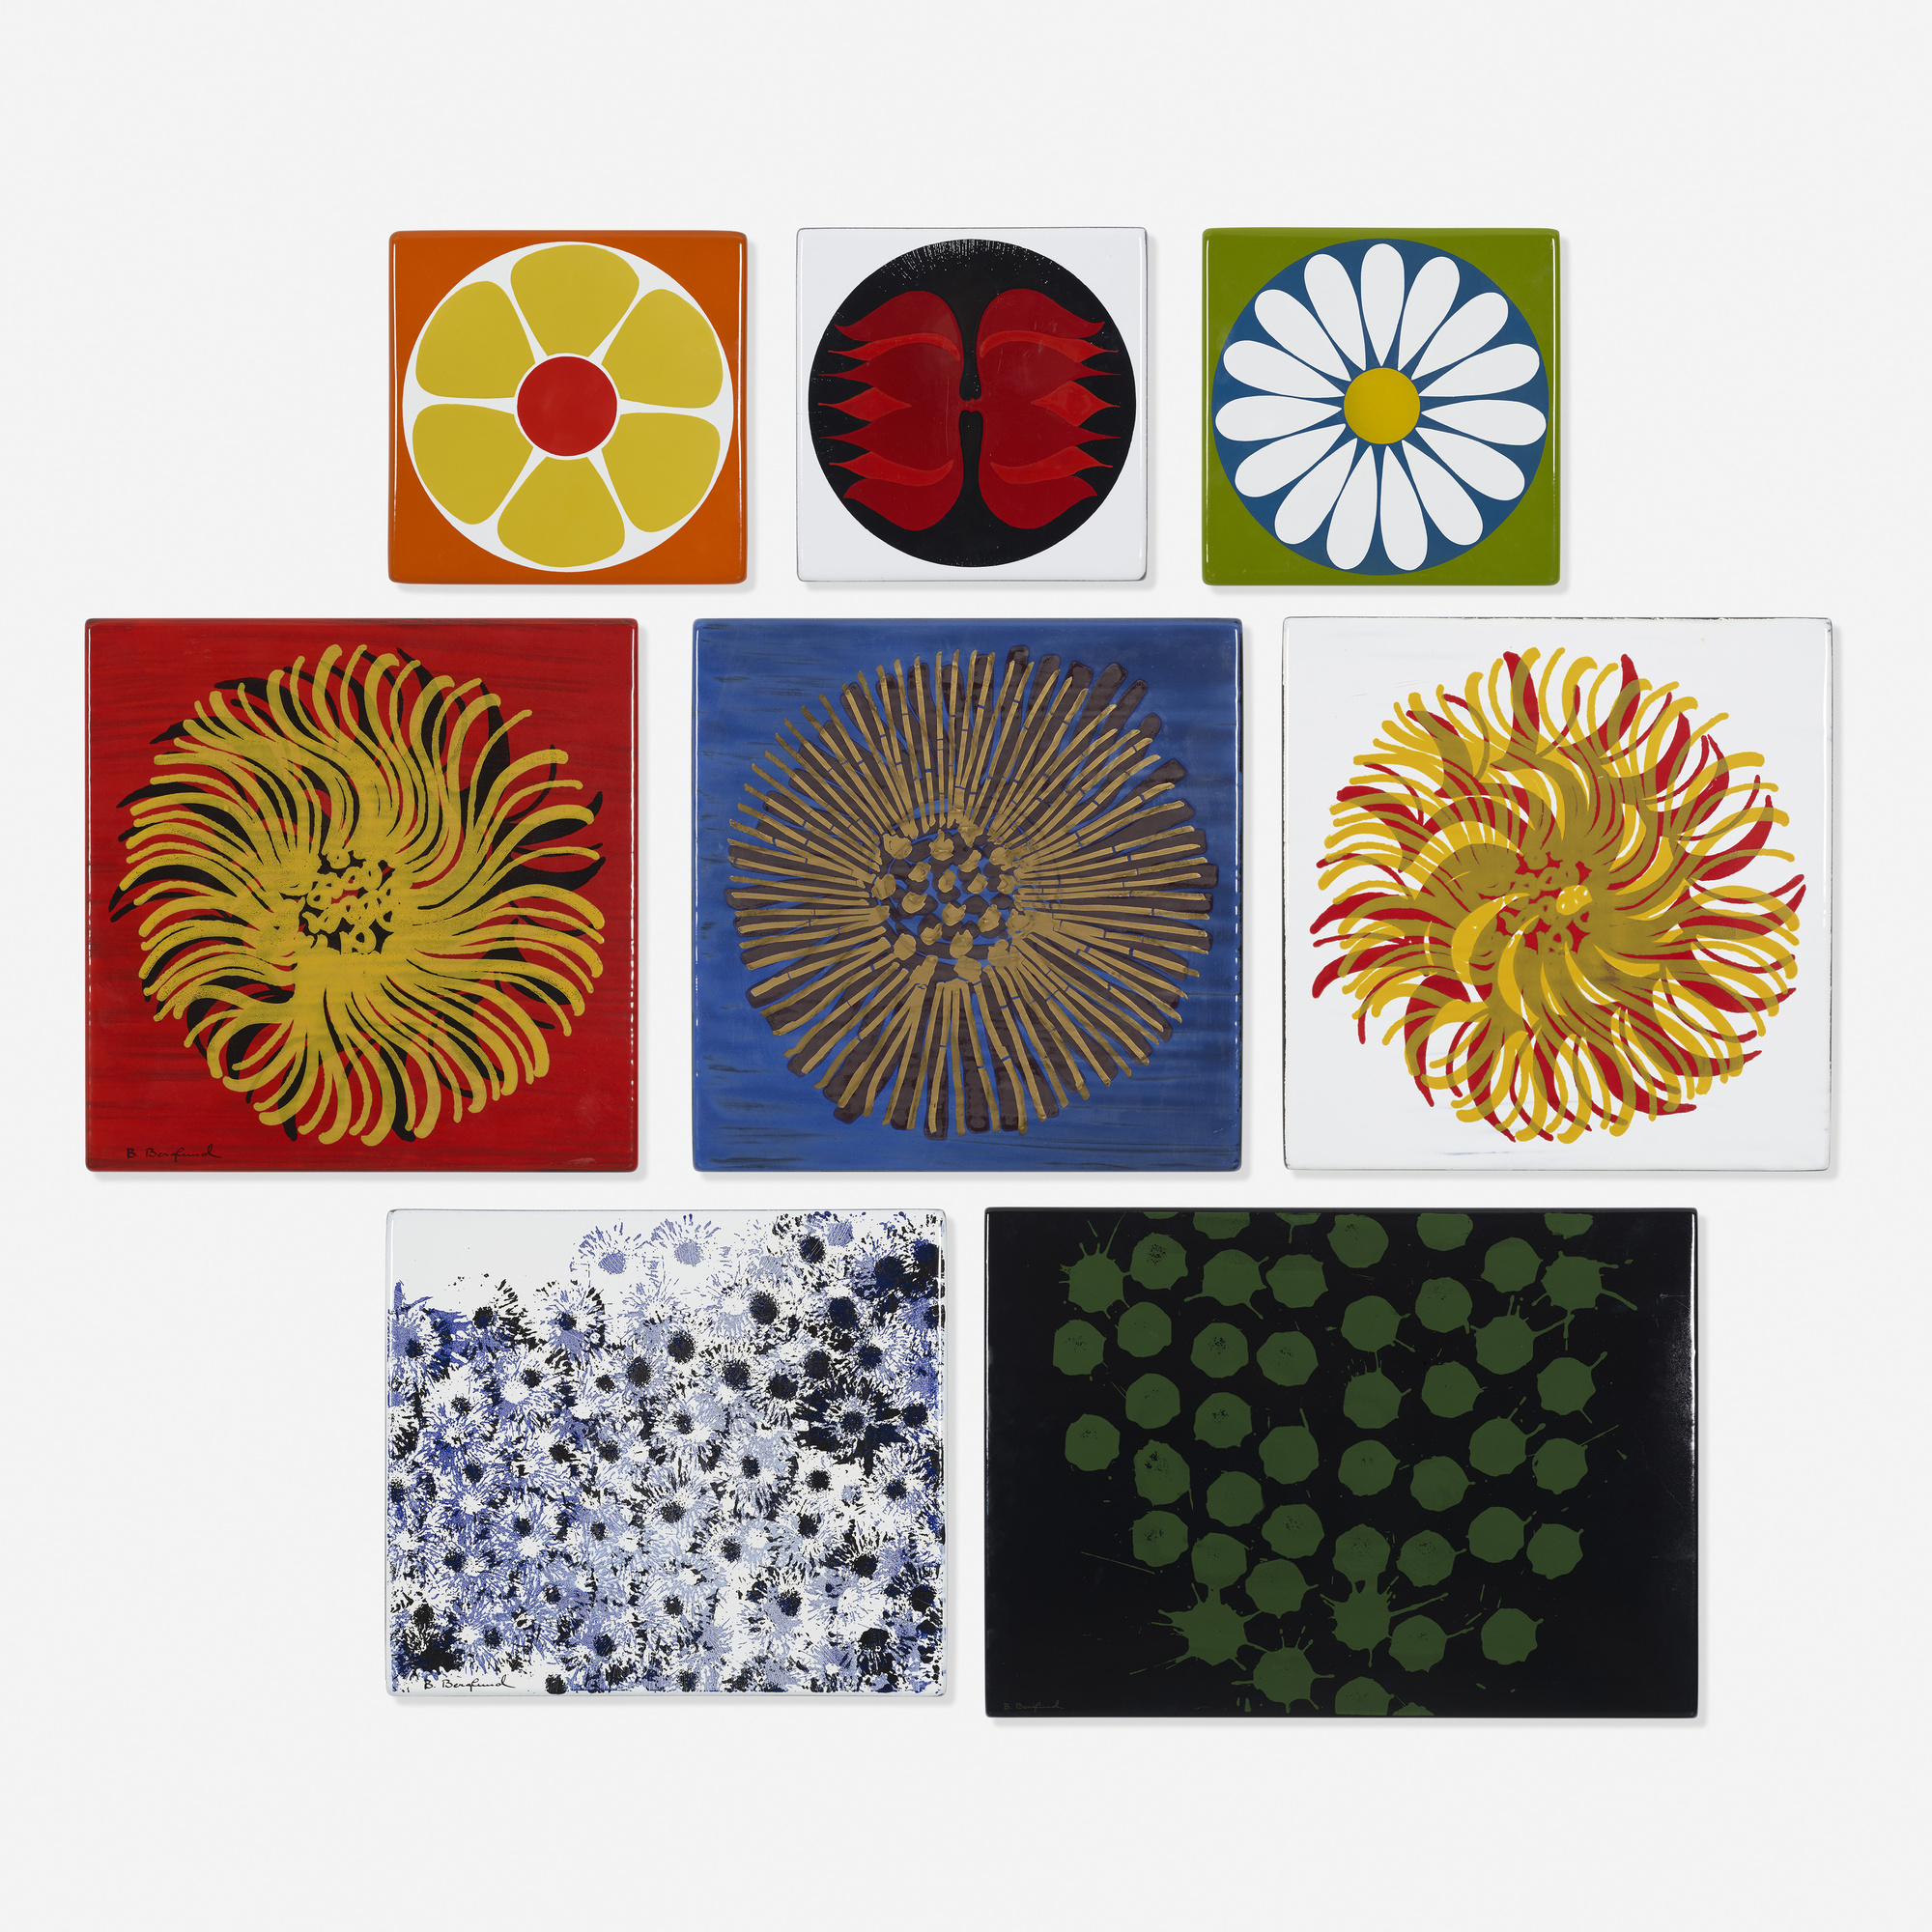 188: Bengt Berglund / collection of eight enamels (1 of 1)